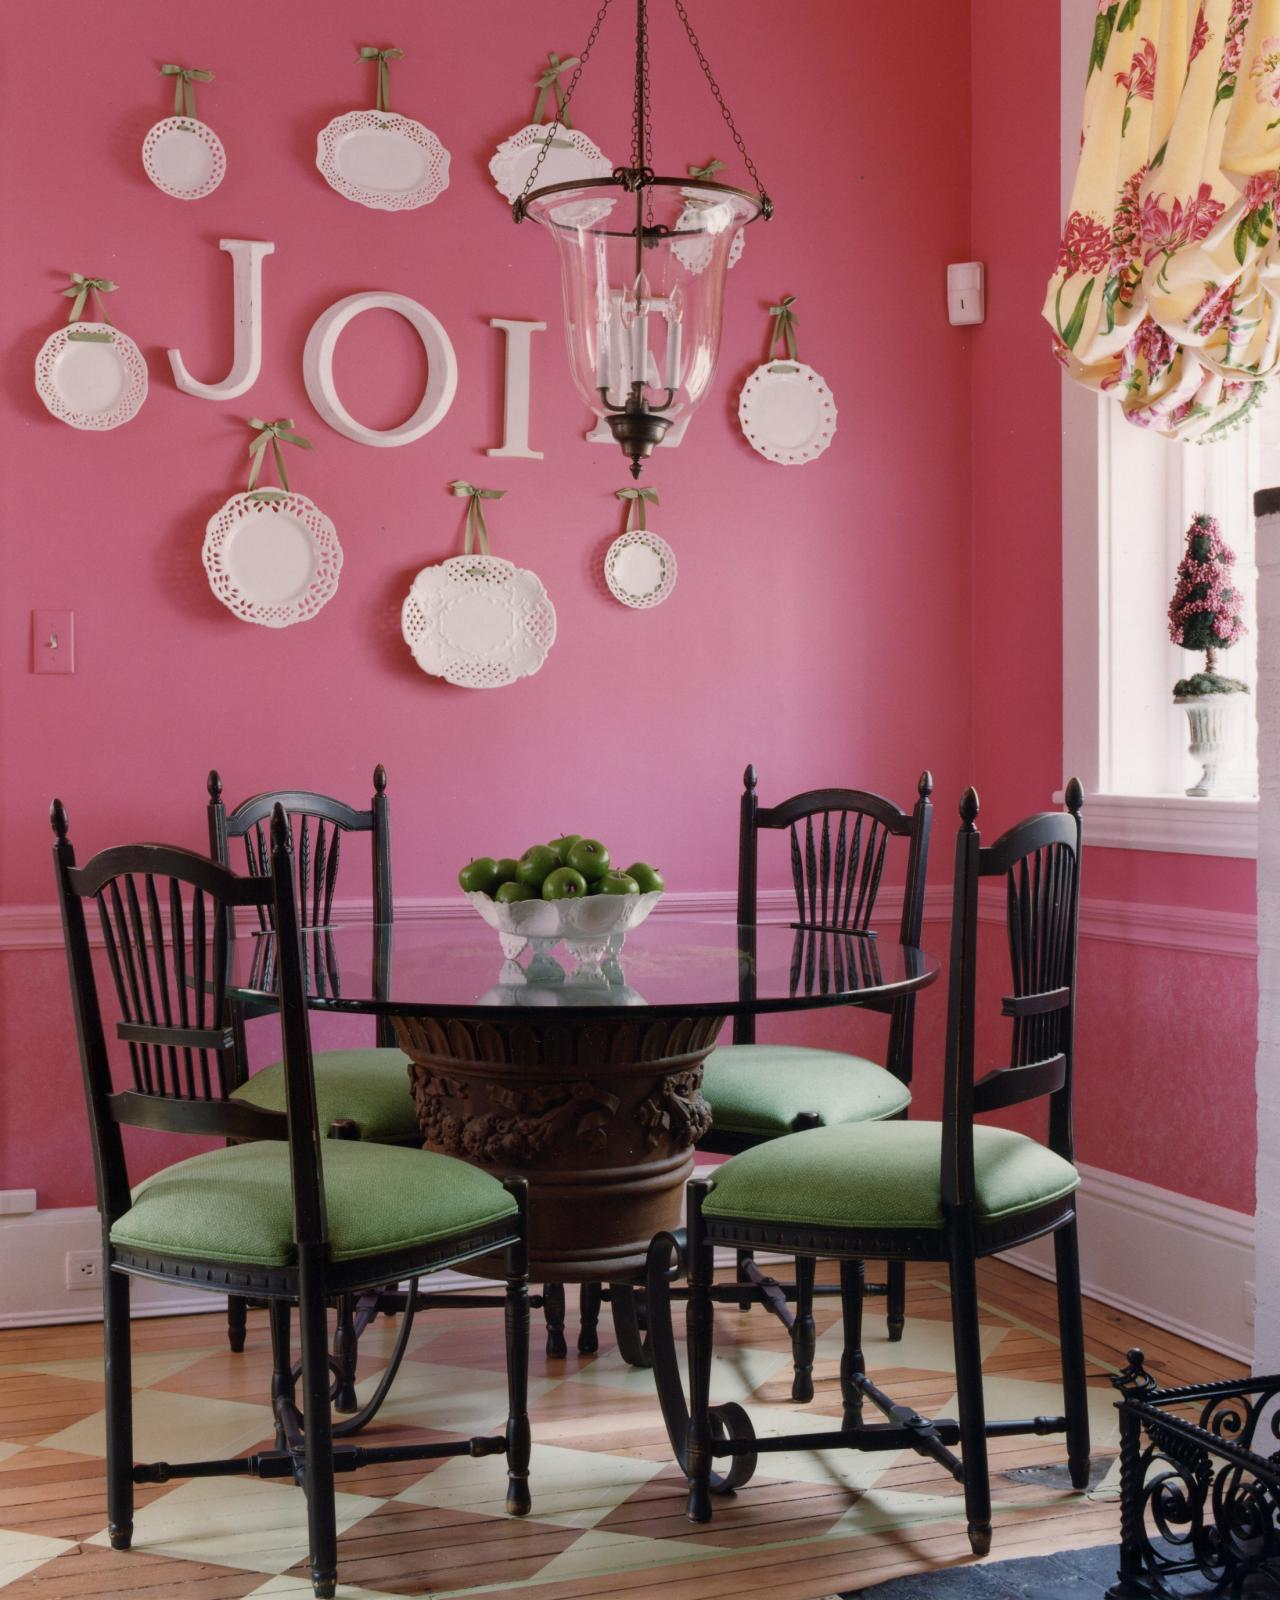 Dining Room Color Scheme Ideas Part - 47: How To Choose A Color Scheme: 8 Tips To Get Started